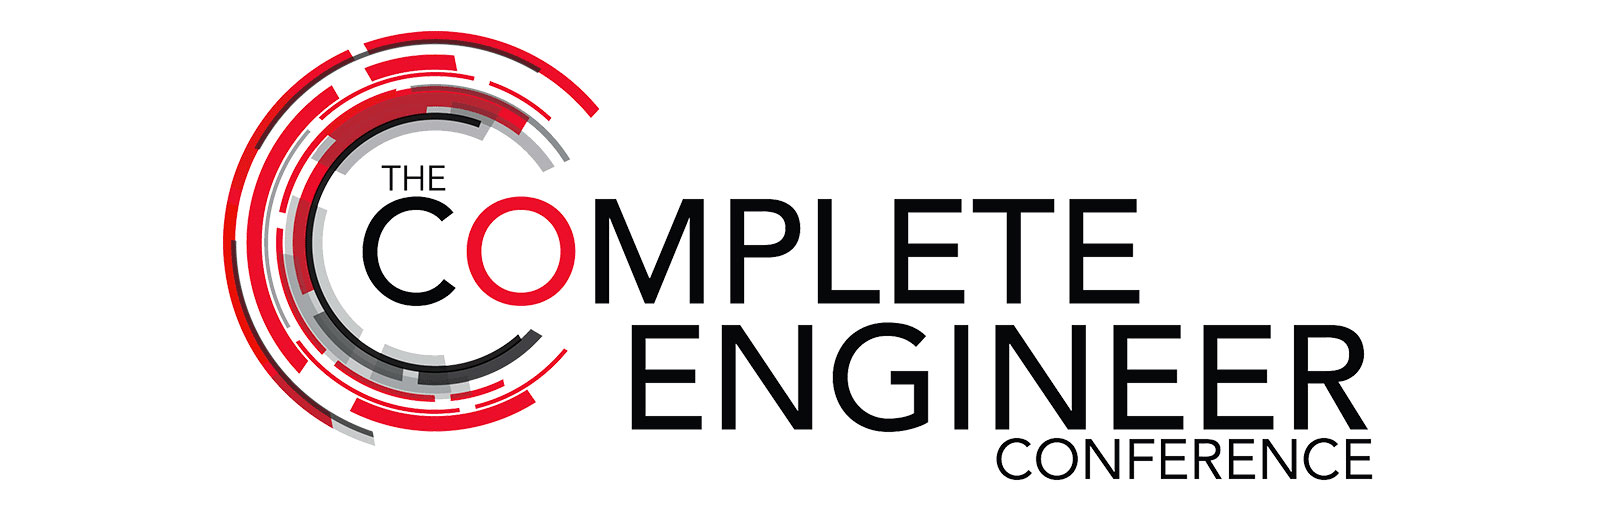 The Complete Engineer Conference